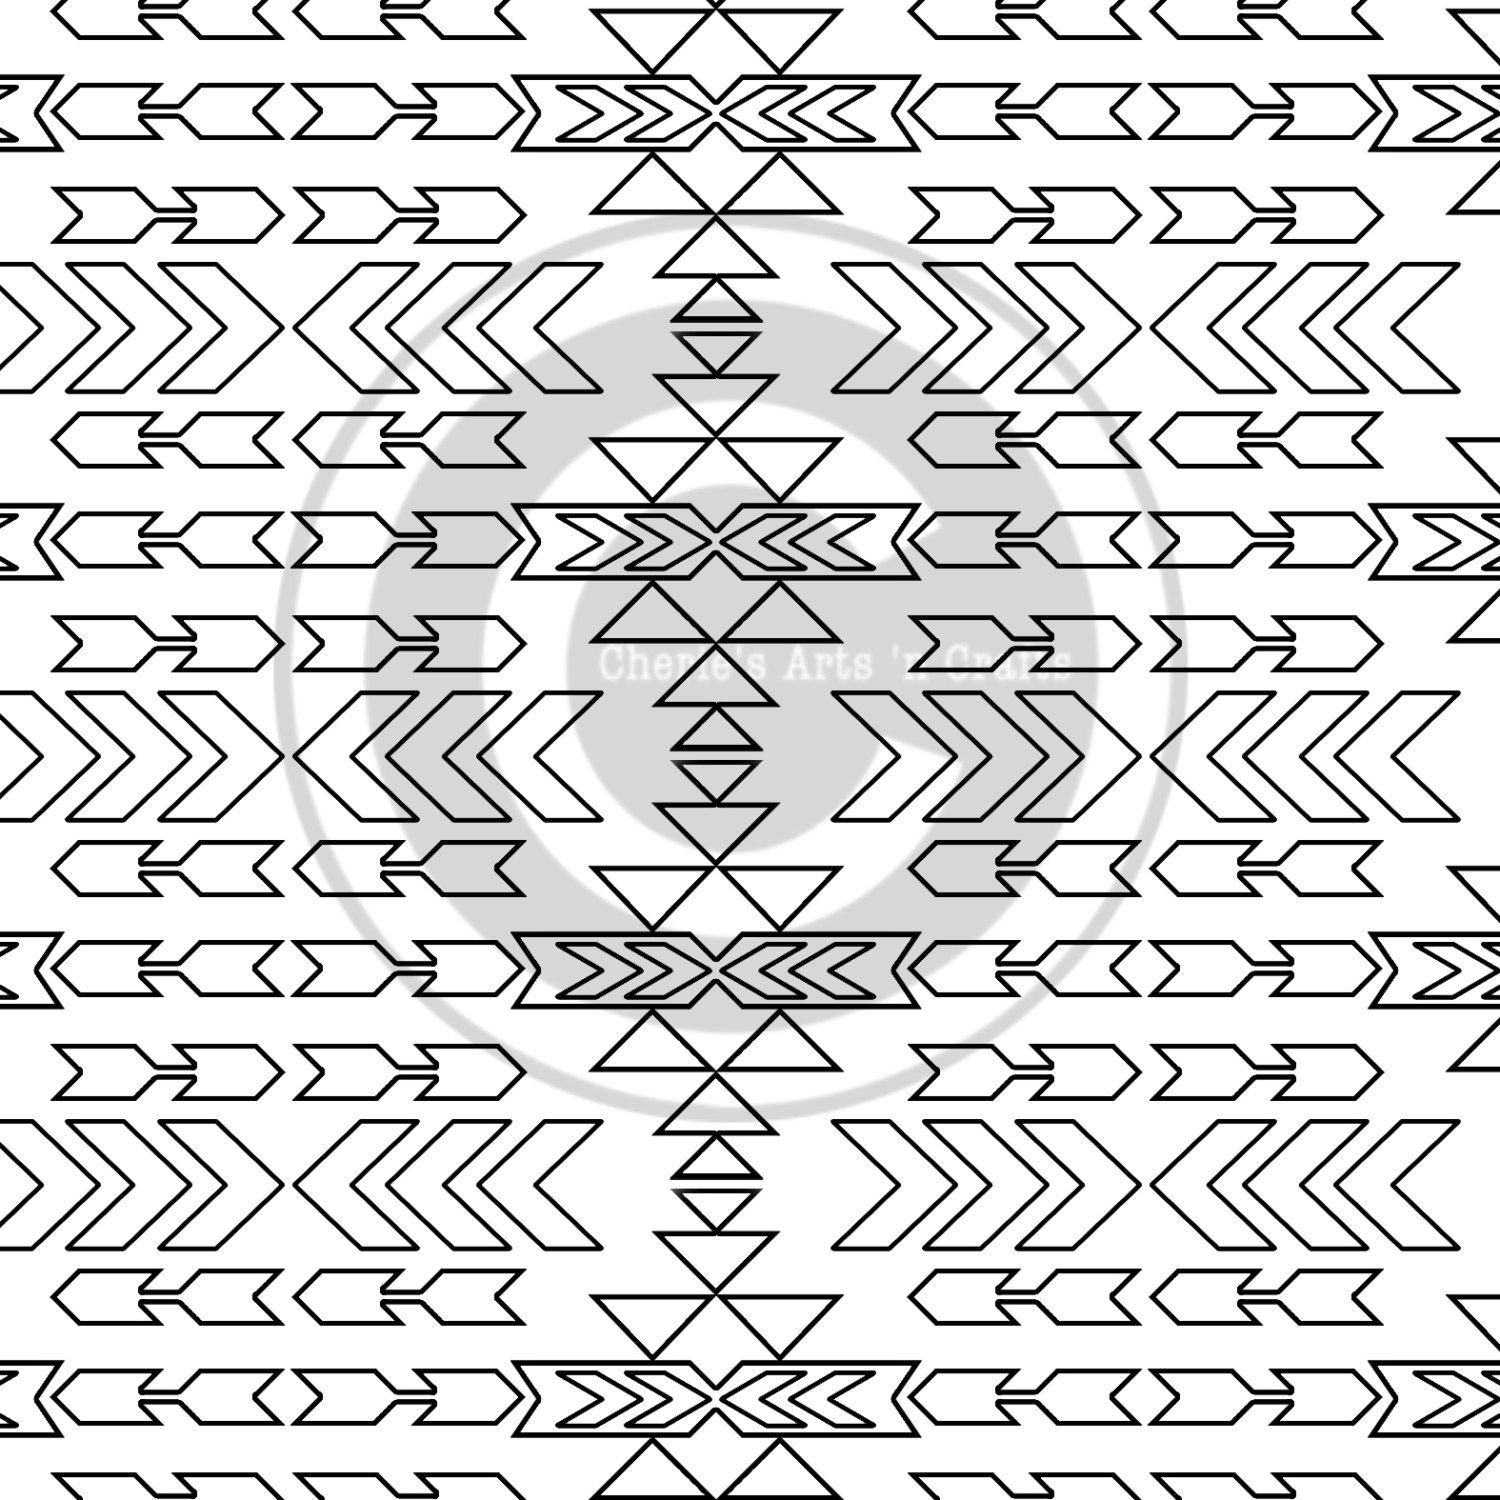 Aztec Pattern Coloring Pages At Getdrawings Com Free For Personal